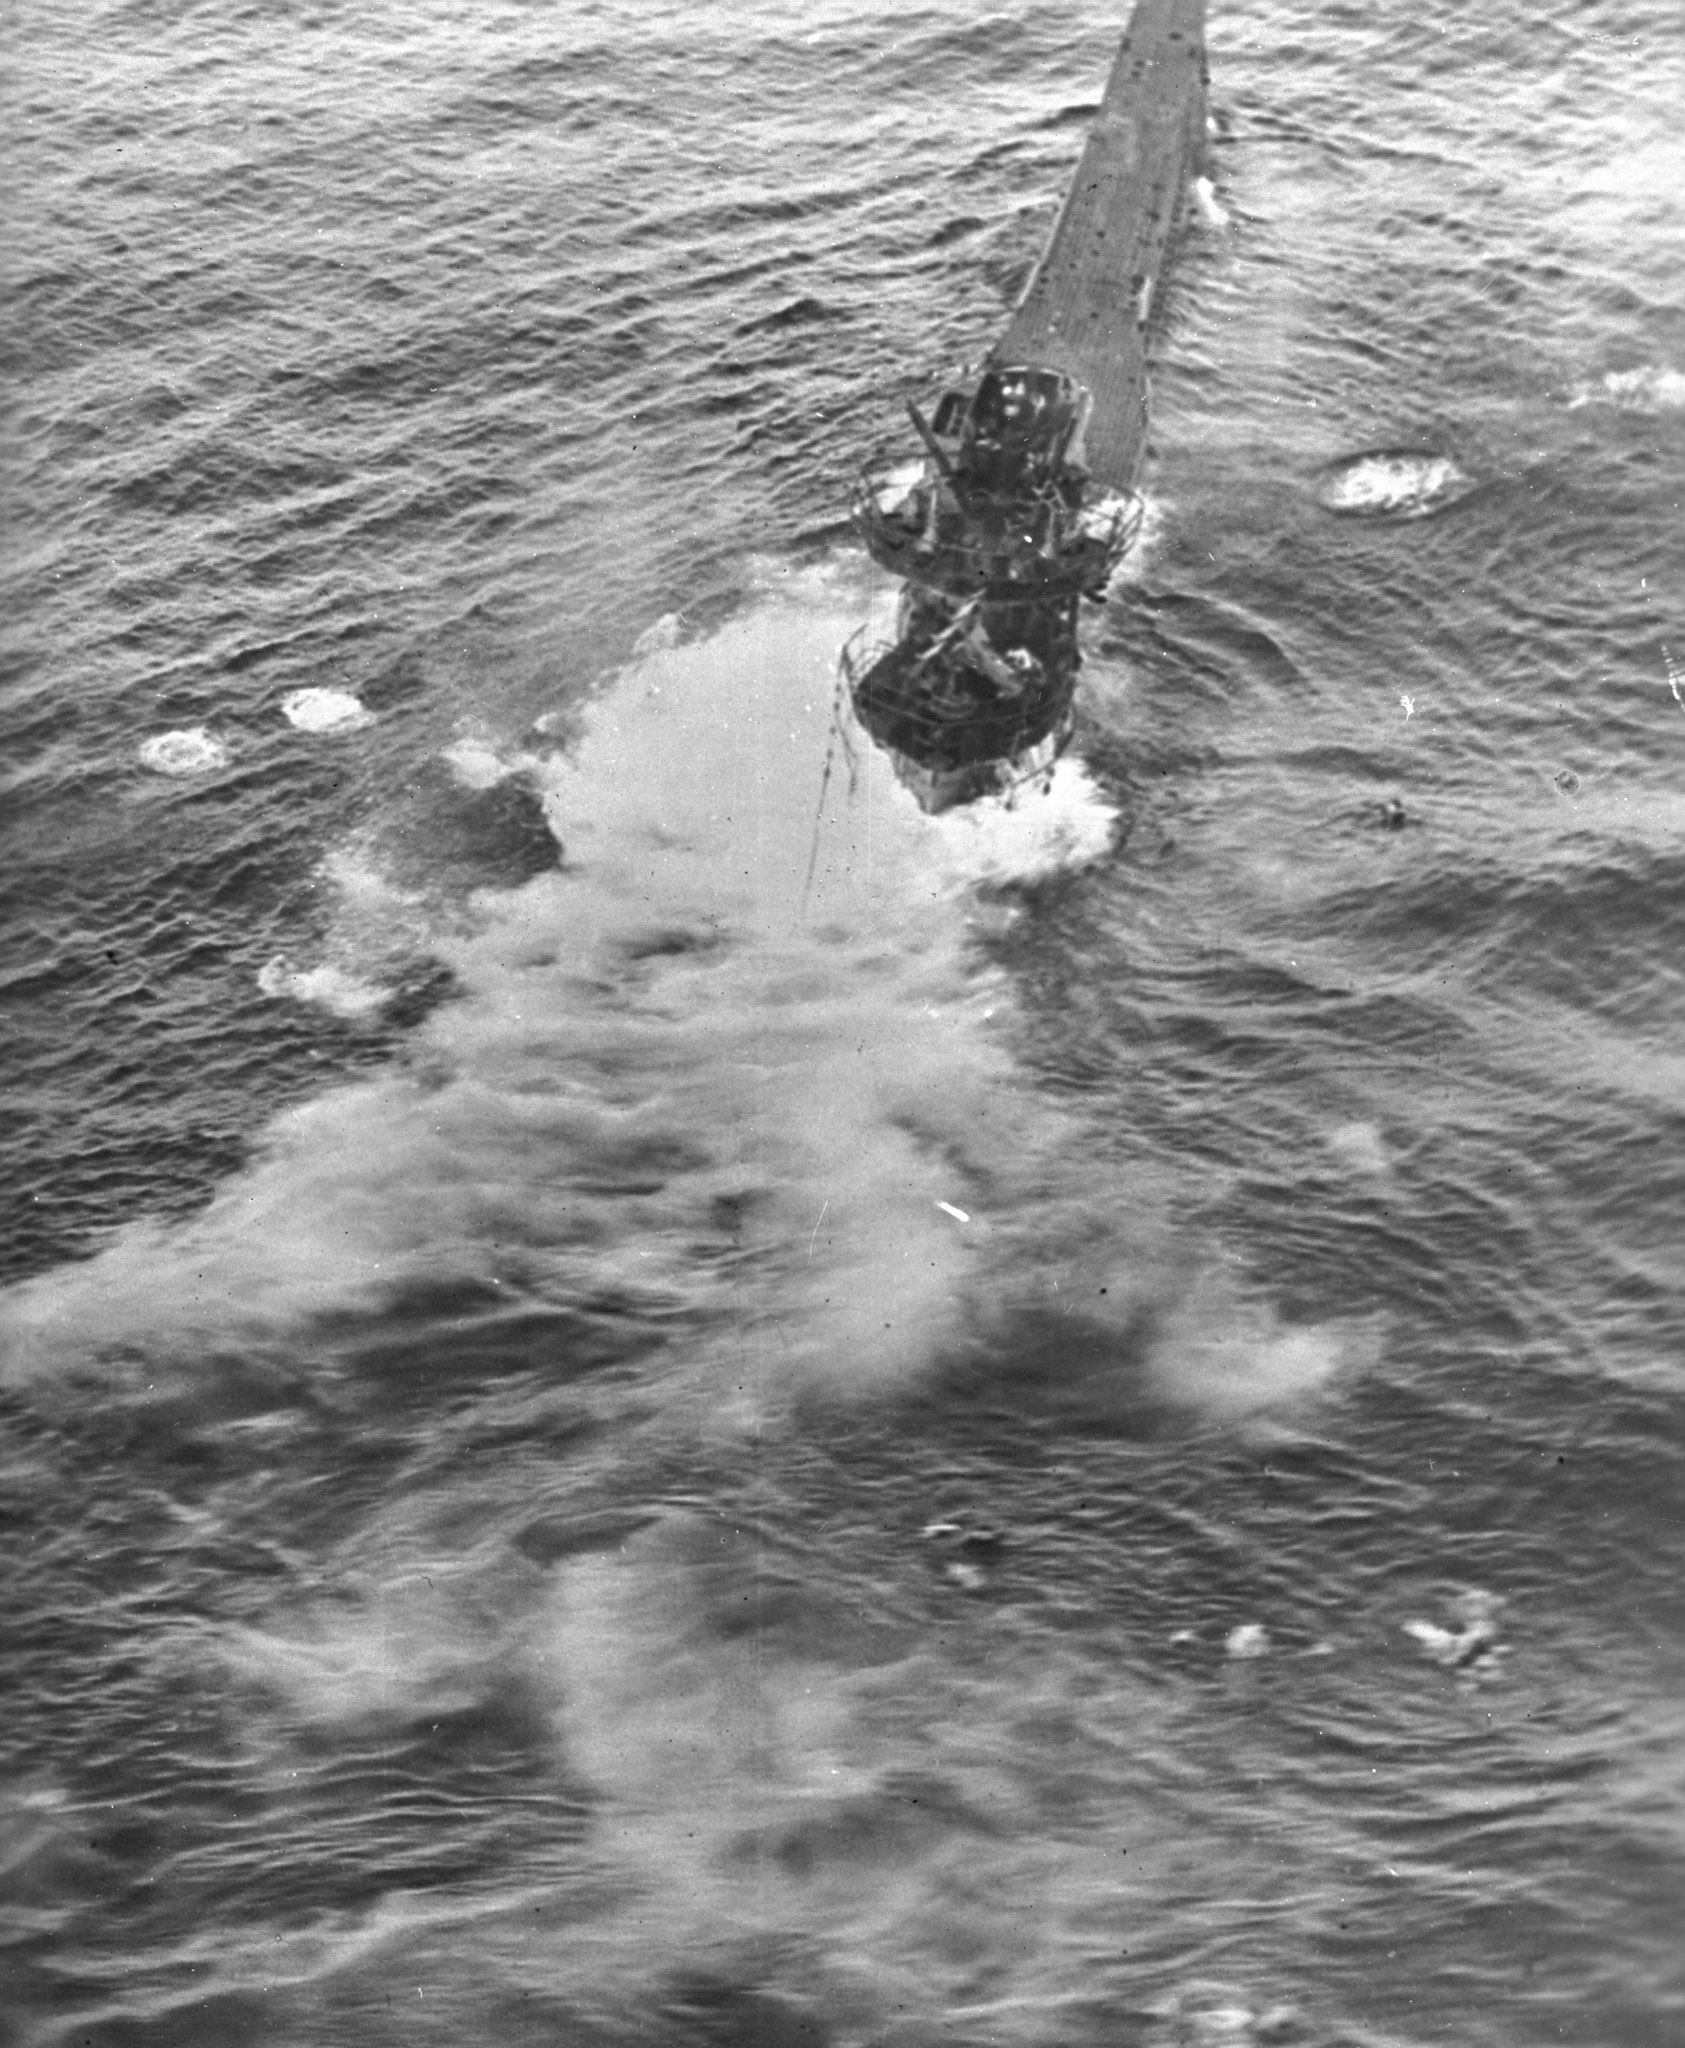 Coastal Command's first U-boat kill of 1944. The Sunderland's gunners put a final burst of fire across the U-boat's six and a half minutes after the first sighting; a few seconds later the U-boat disappeared beneath the surface. Survivors can be seen in the water at the bottom right of the photo. PHOTO: DND Archives, PL-61430